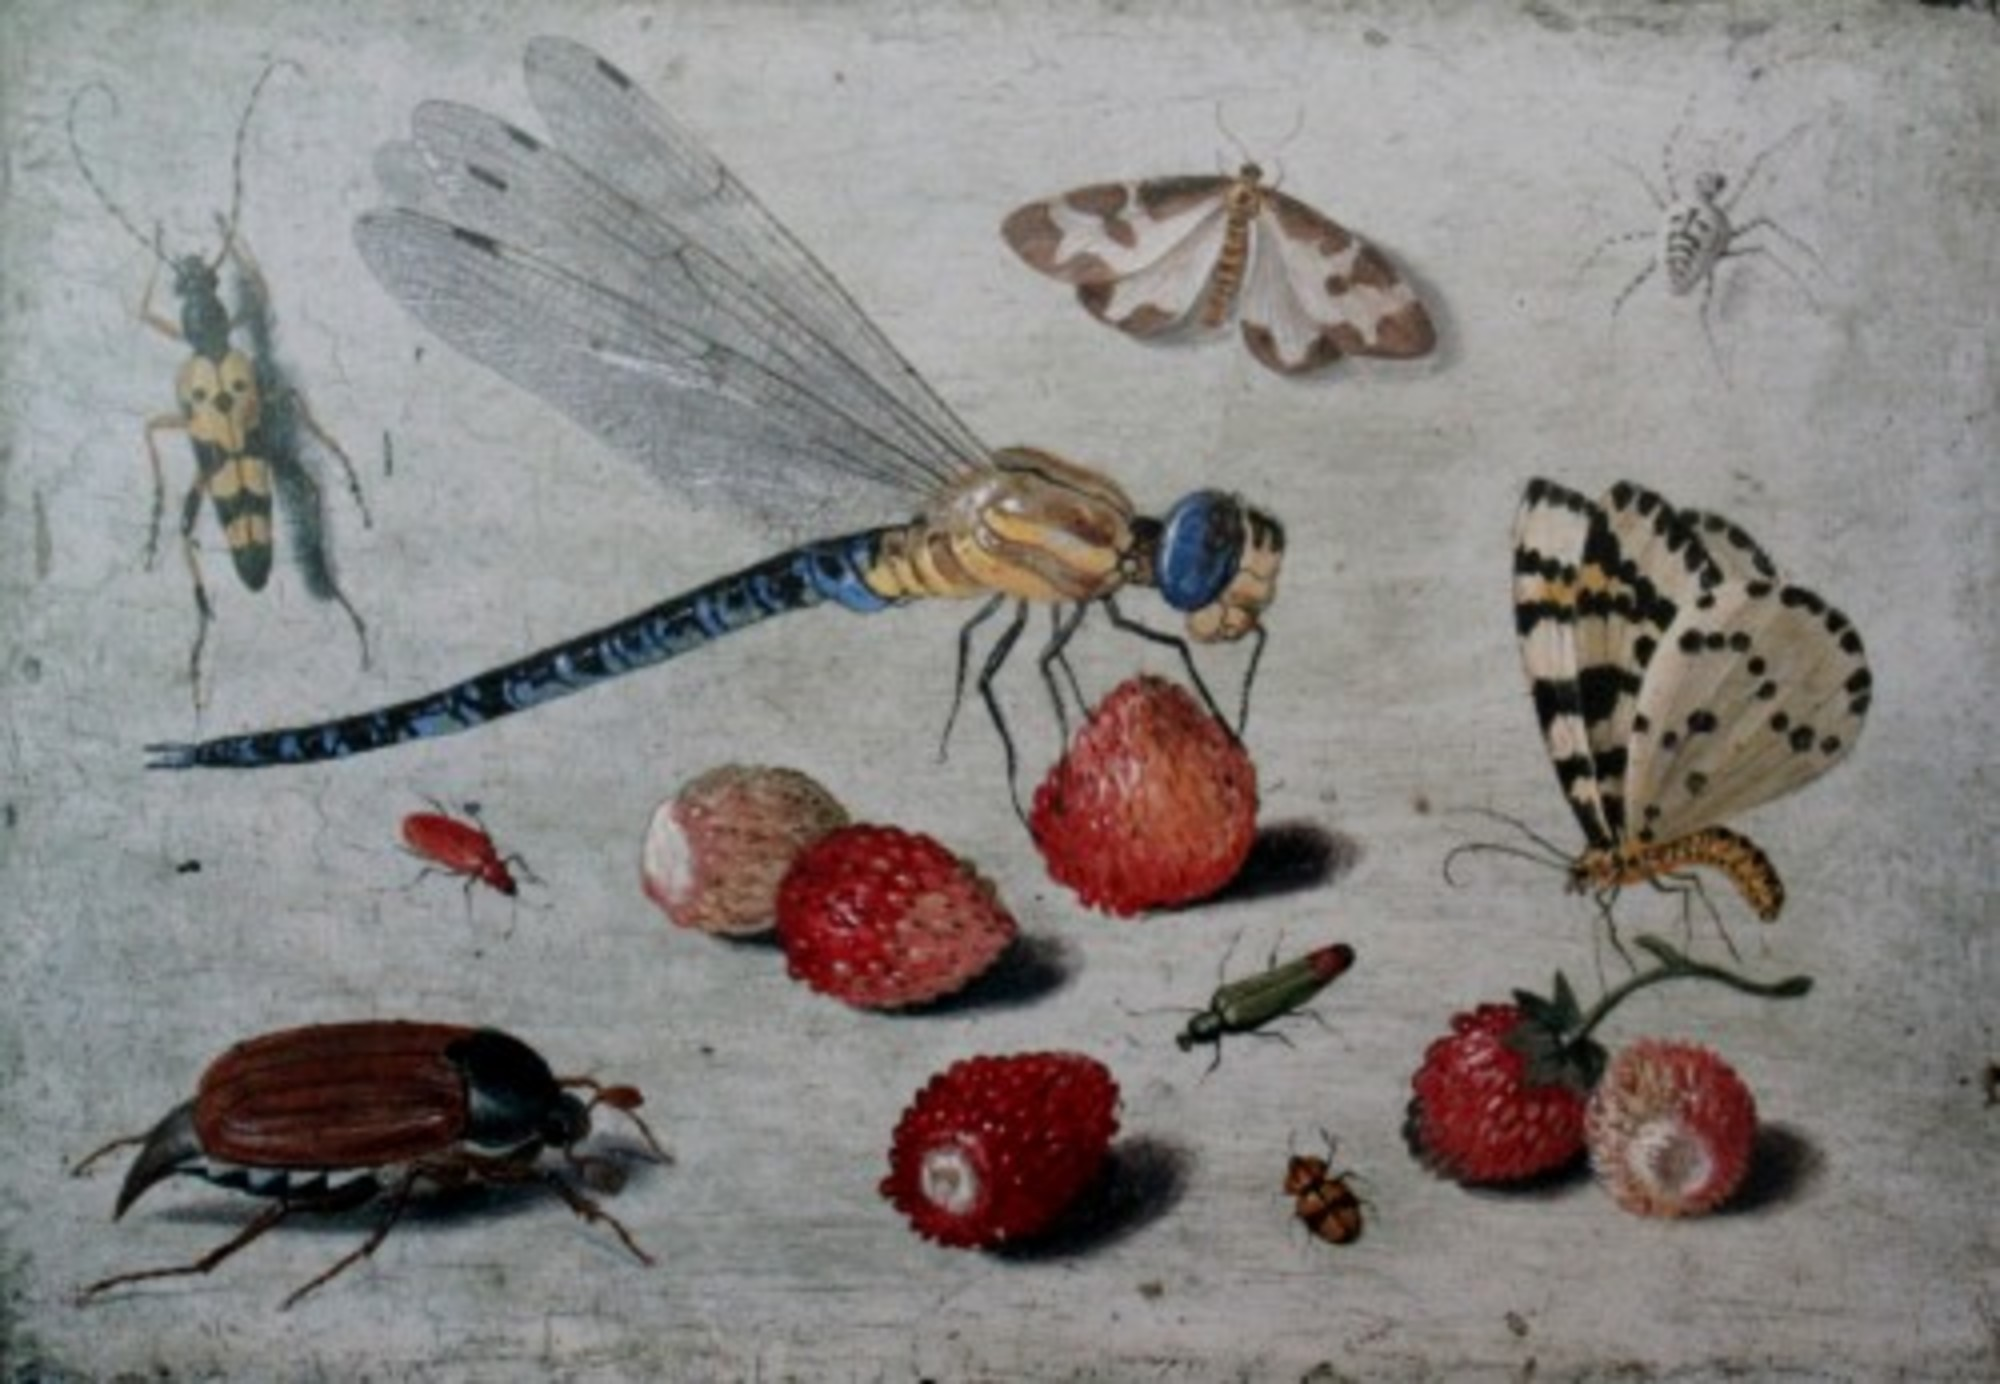 Jan-van-Kessel-I-Dragon-fly-moths-spider-beetles-with-strawberries.jpg